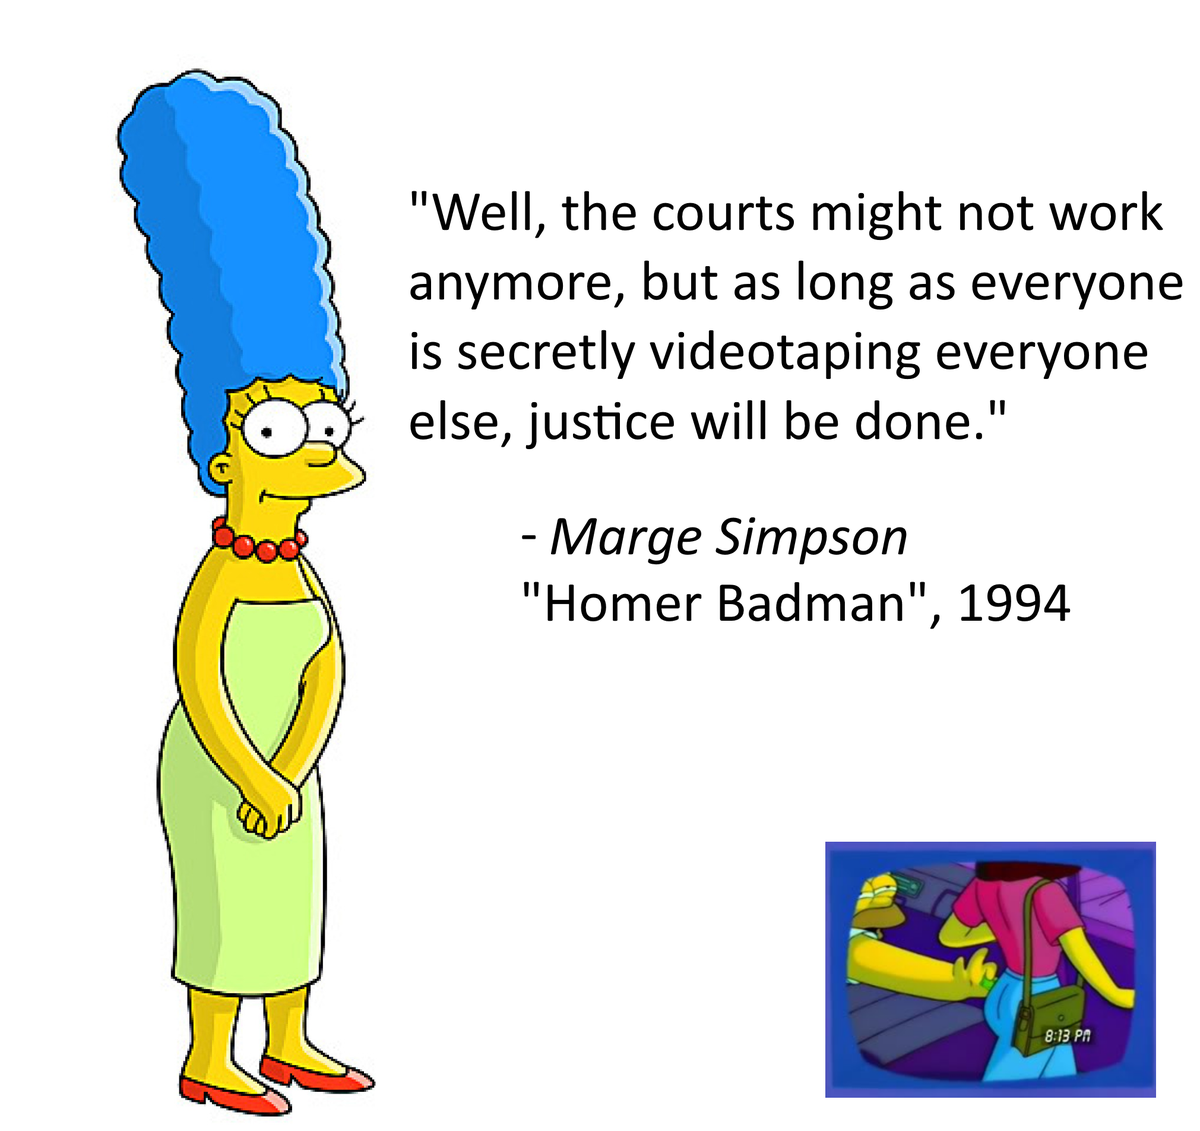 Marge Simpson's words in 1994 seem to have some relevance today, even if it was tongue-in-cheek. http://t.co/H2szahn5JT